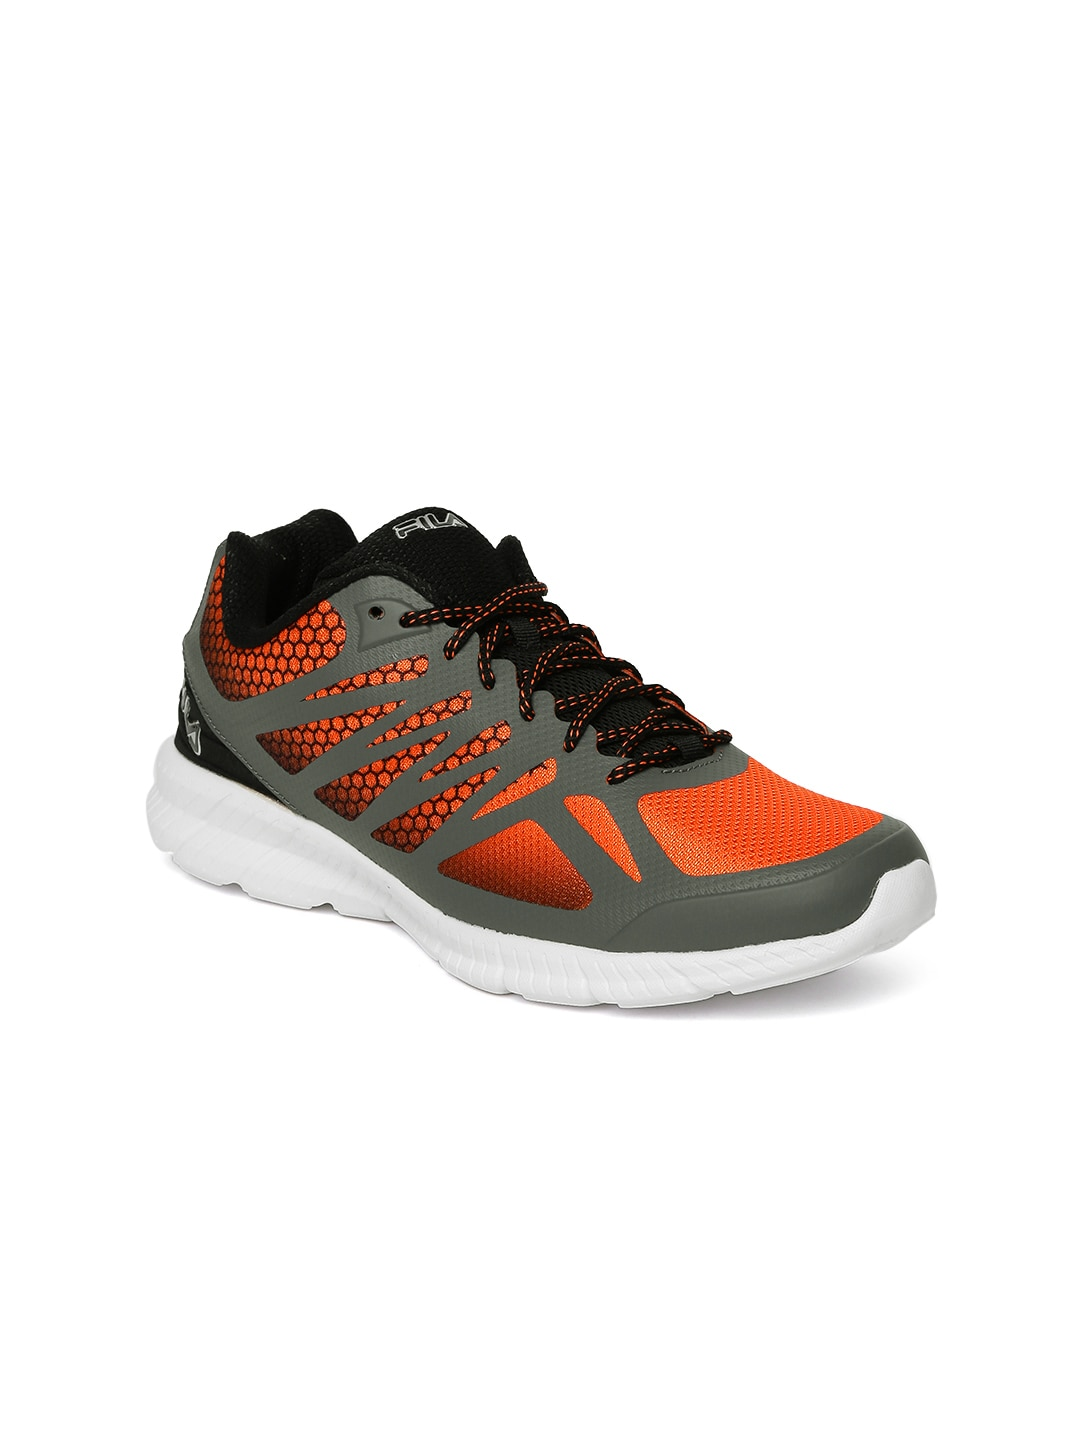 35e6c80f4 Sales Sports Shoes - Buy Sales Sports Shoes online in India